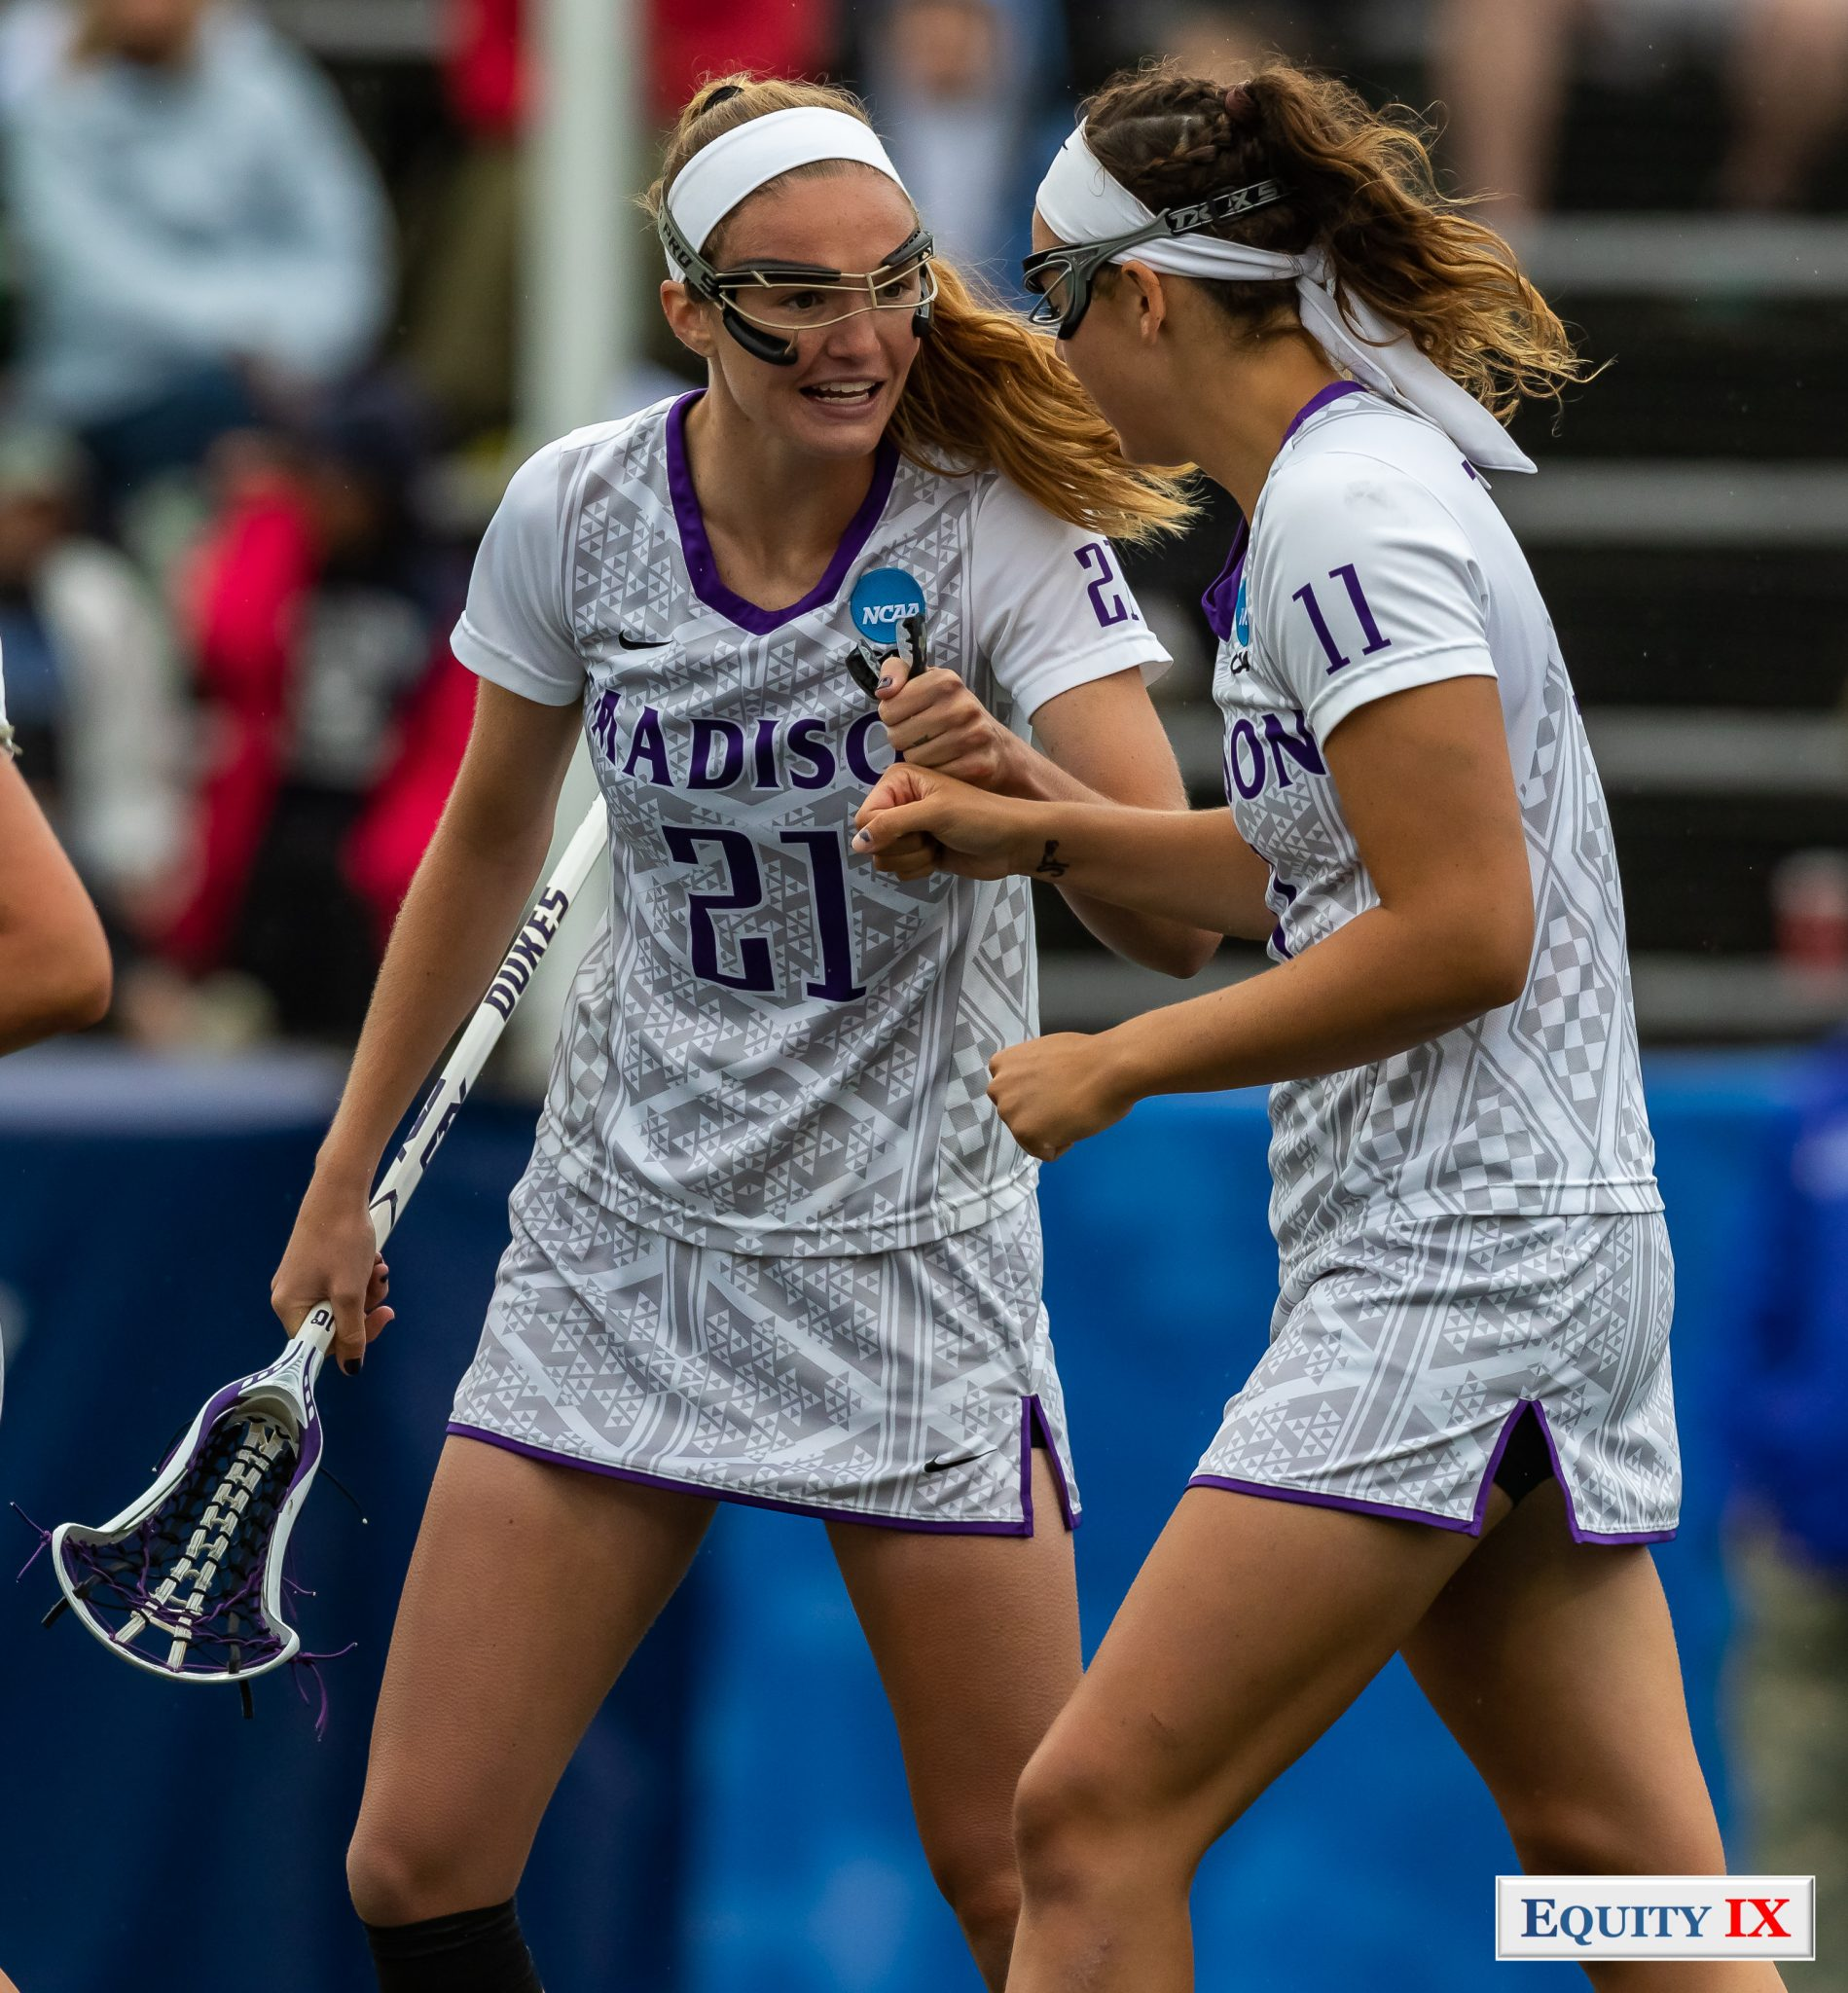 """Maddie McDaniel (JMU #11) and Morgan Hardt (JMU #21) pump fists to celebrate a goal both are wearing goggles and whit headbands with """"Madison"""" and """"NCAA"""" logos on their jerseys - 2018 NCAA Women's Lacrosse Championship Game © Equity IX - SportsOgram - Leigh Ernst Friestedt"""